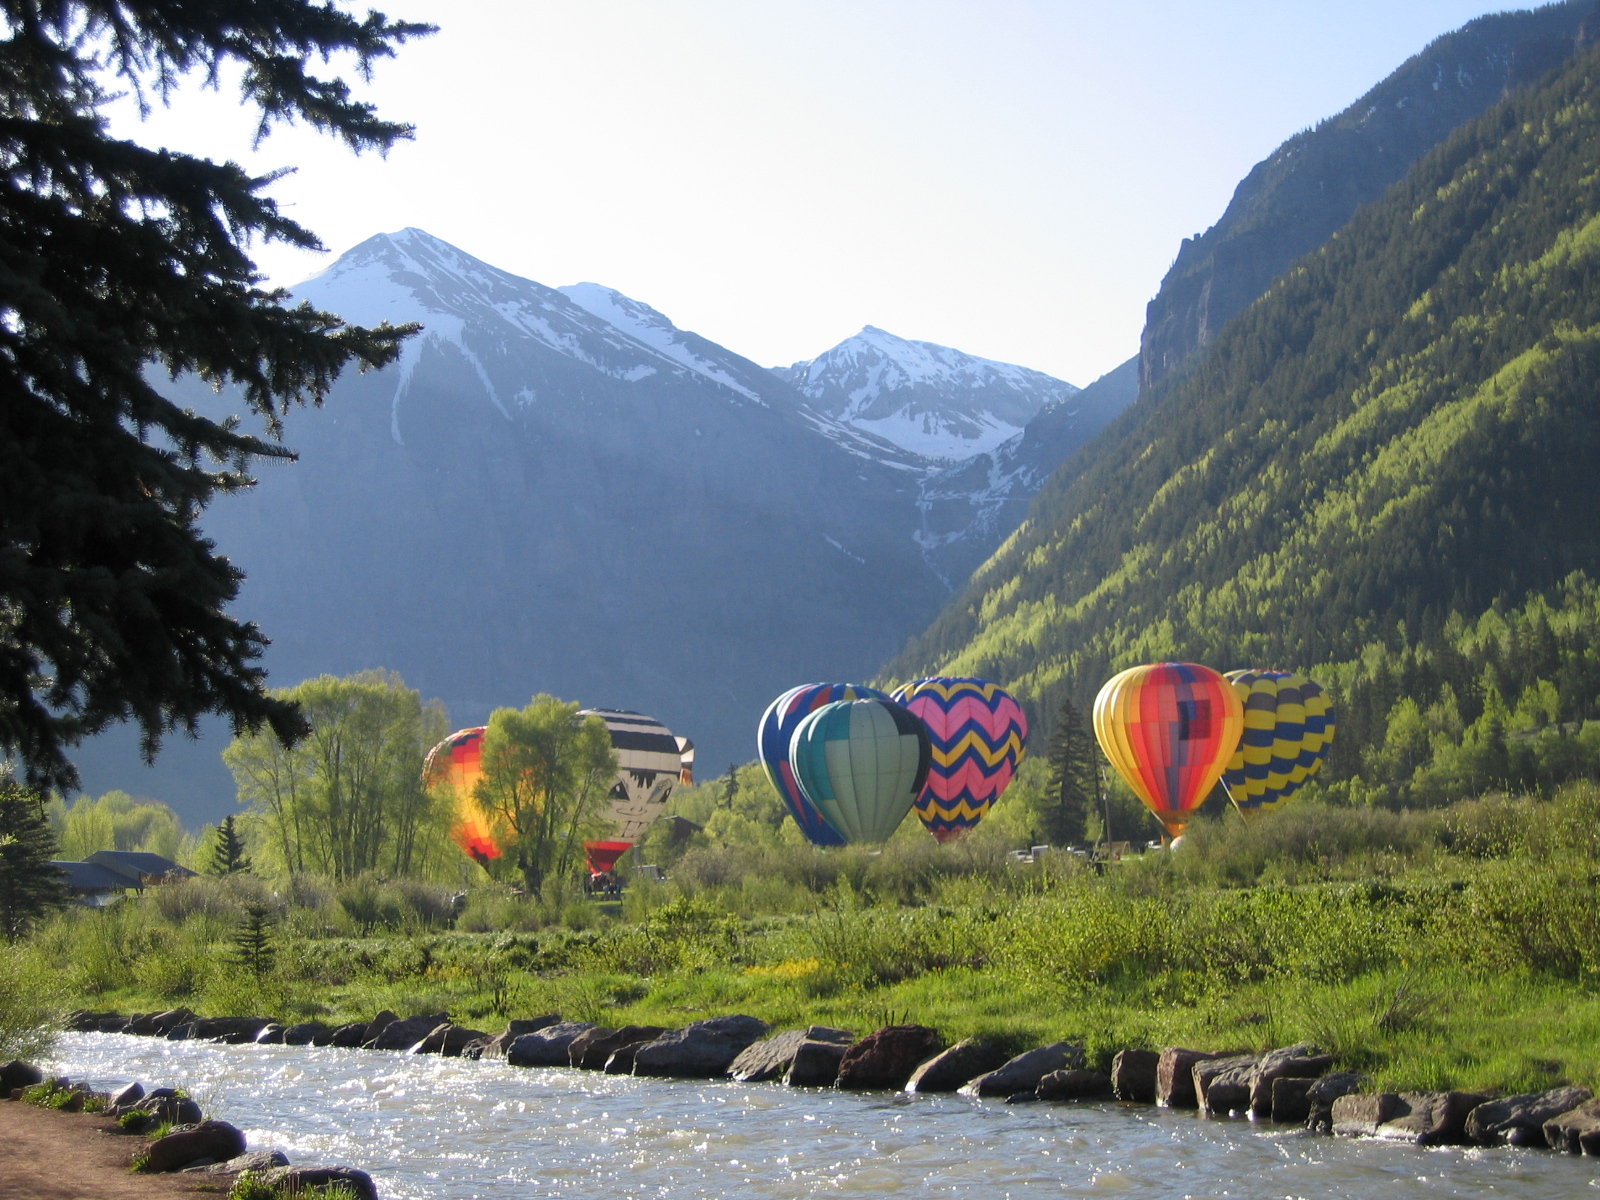 Hot Air Balloons in the mountains